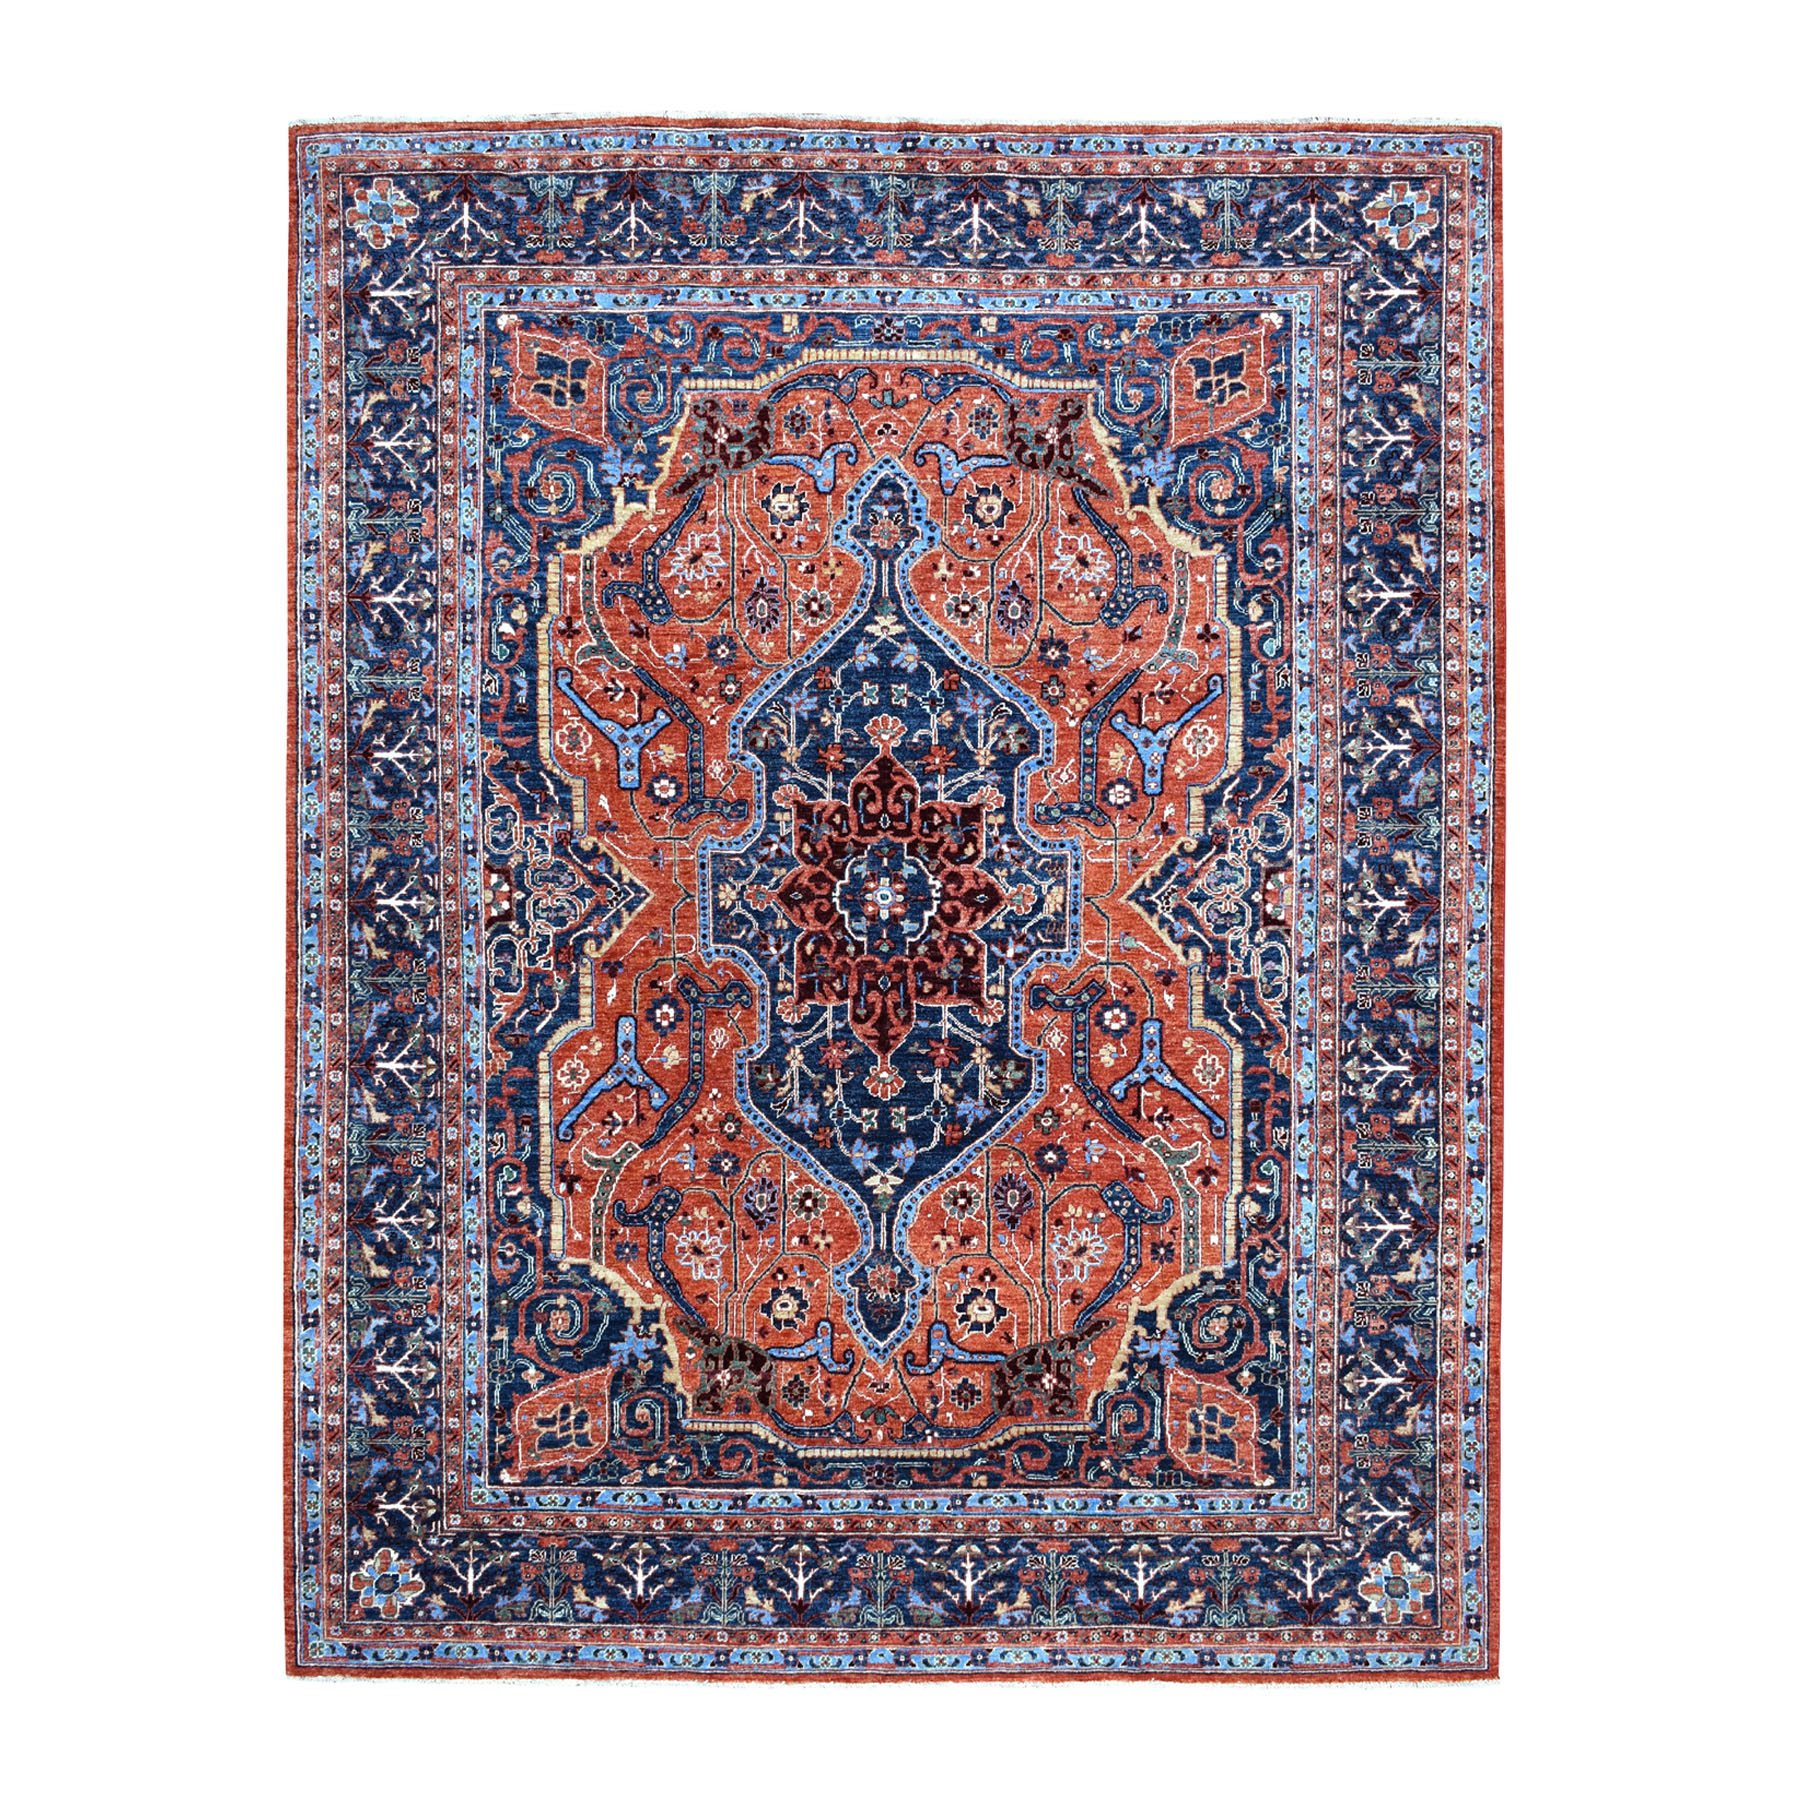 8'X10' Peshawar With Sarouk Fereghan Design Hand Knotted Pure Wool Oriental Rug moaecc67